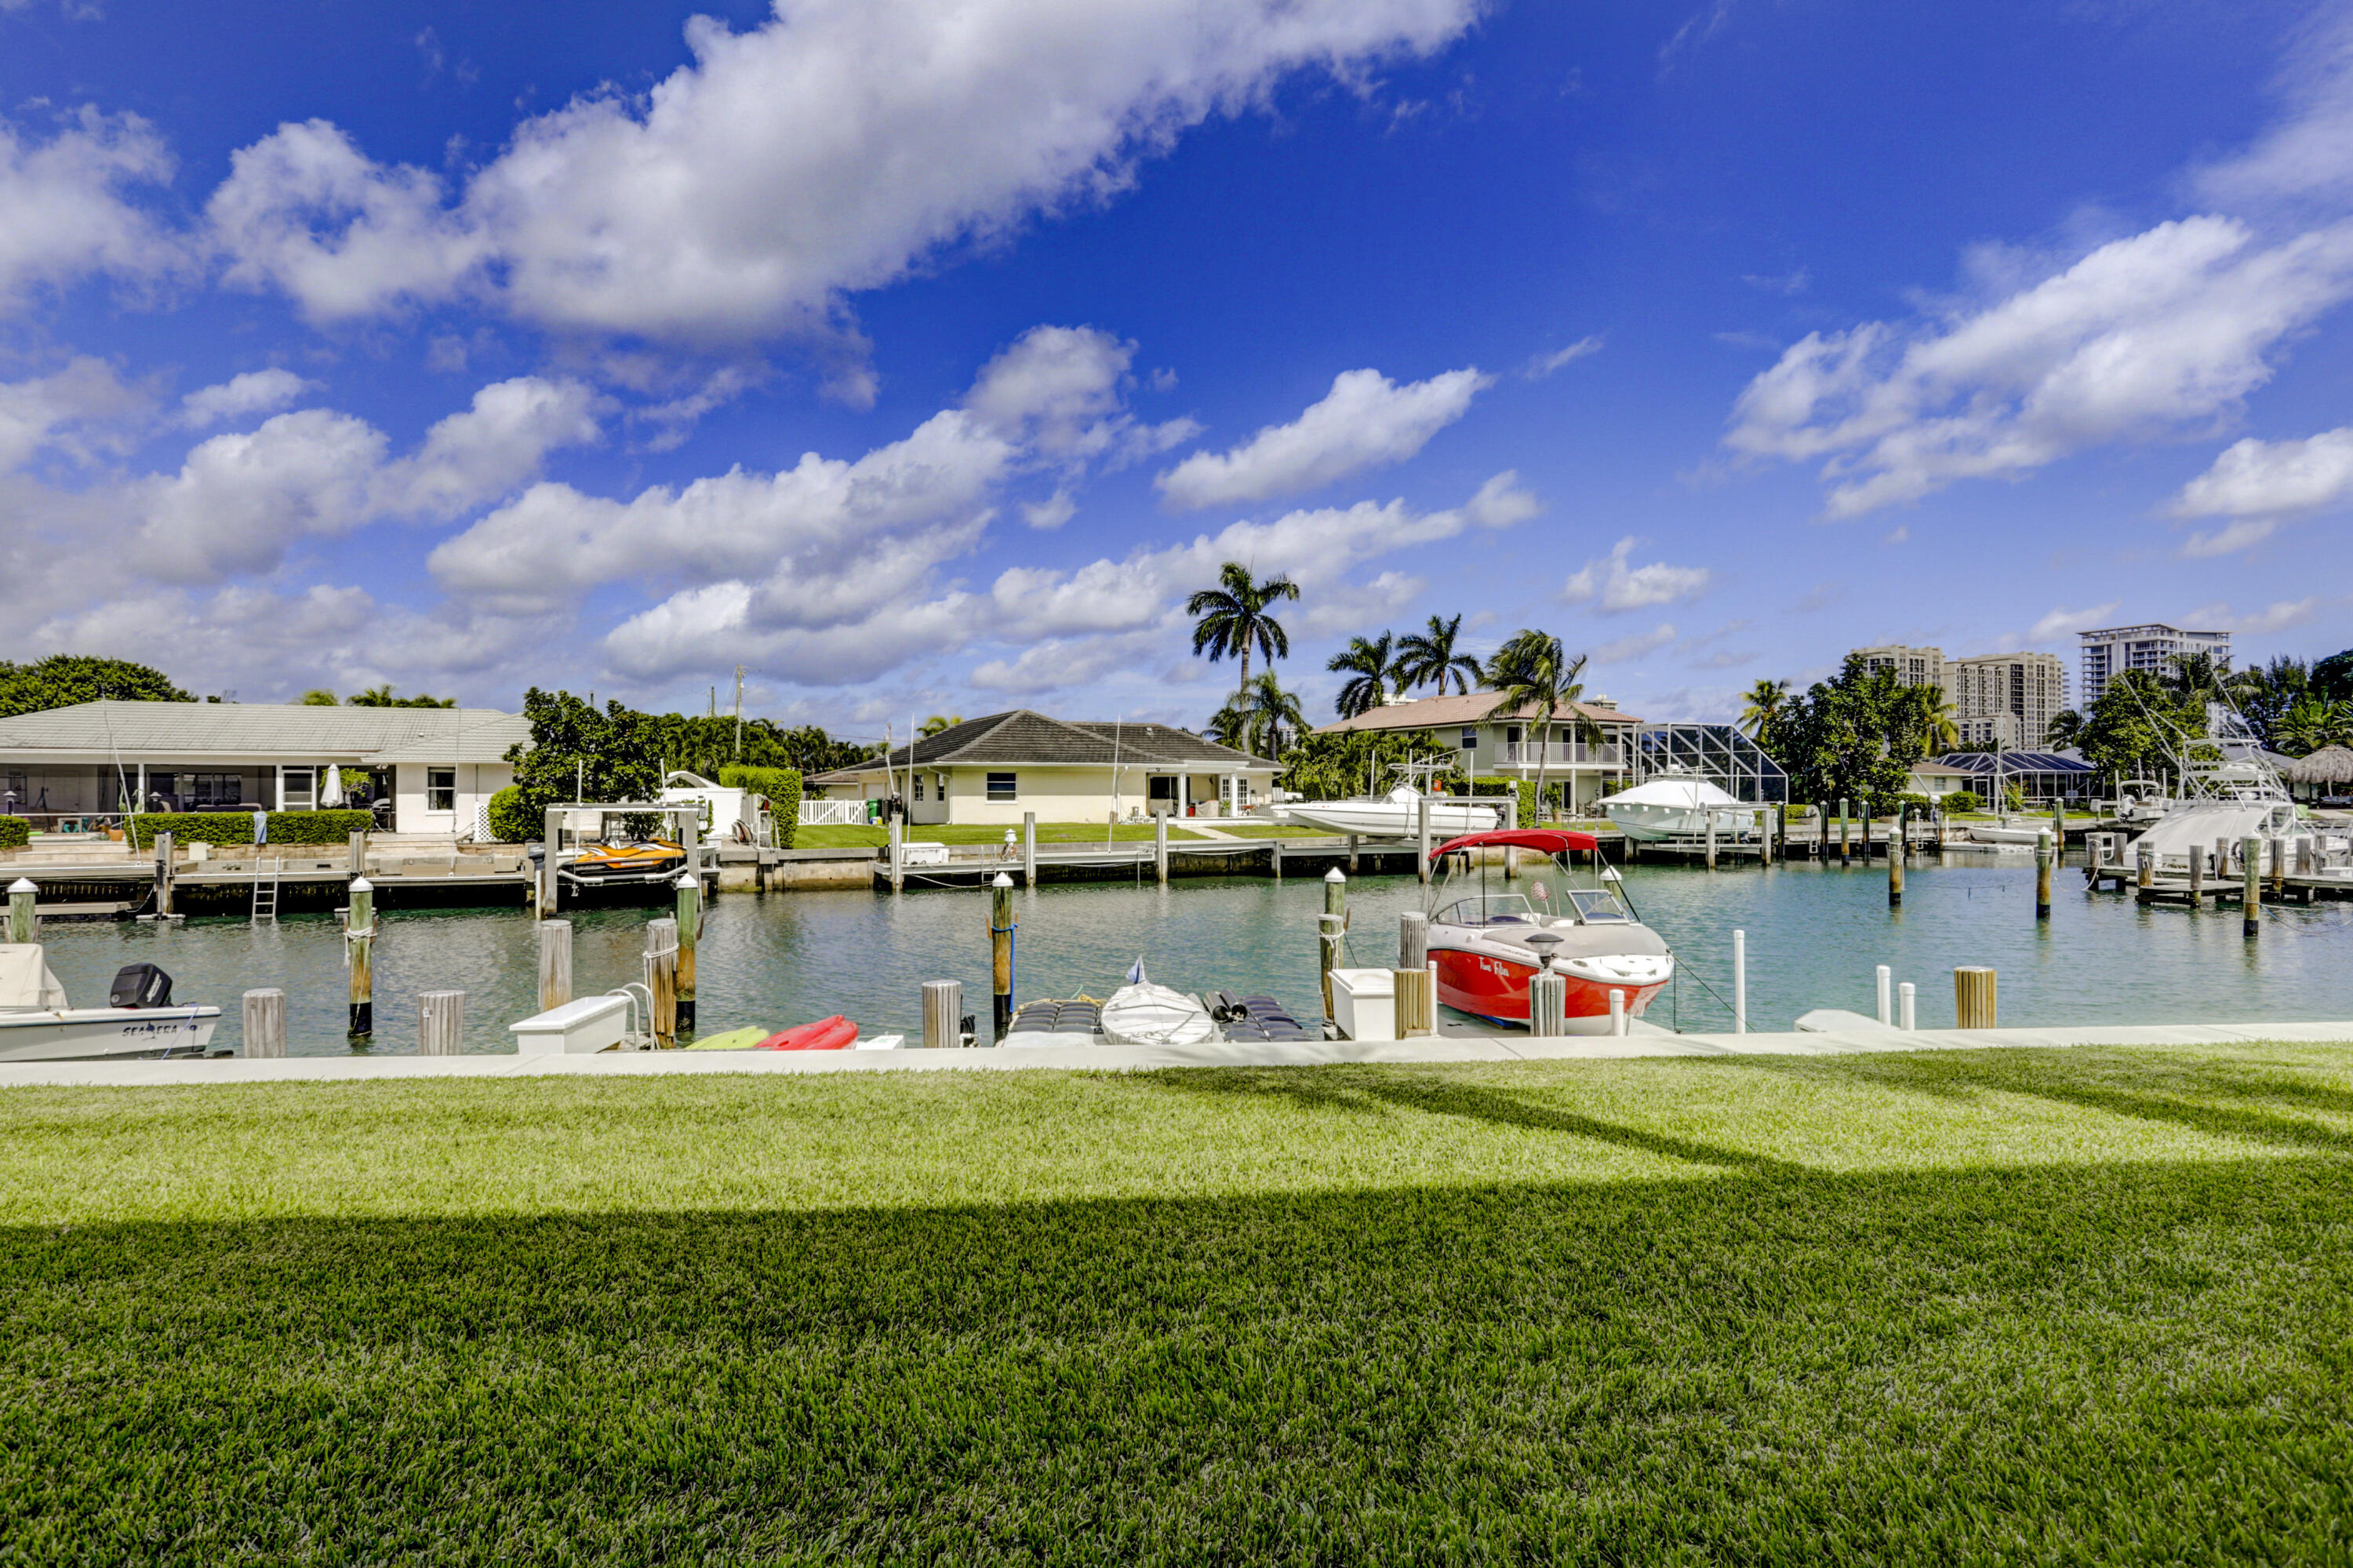 Rarely available 1st floor waterfront home with large screened patio available for immediate occupancy. As you enter the home you will notice the white & bright updated kitchen and white marble look modern tile flooring throughout. 2021 Water heater and 2018 Air Conditioner. A large great room overlooks your water/marina view and oversized screened patio. Two large bedrooms complete this perfect winter or year round home in one of the most desirable locations, Singer Island. The master bathroom features a large stall shower and walk in closet. The guest bathroom features a tub/shower. The community boasts deeded beach access, a large community clubhouse with the largest pool on Singer Island. Boat slips available for purchase or rent. Make this your home today!